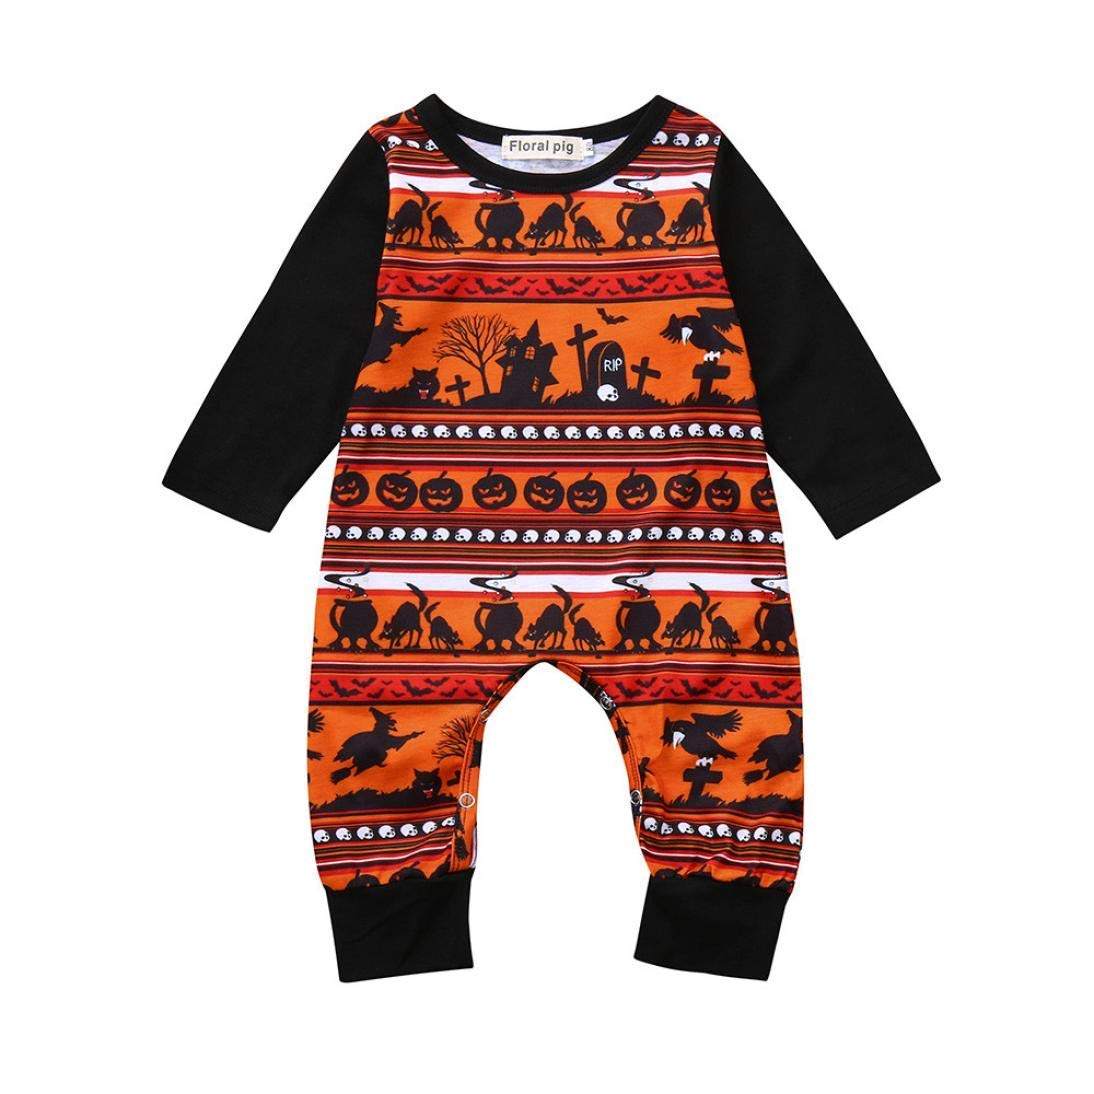 b63624b24 Get Quotations · Iuhan Clearance Sale! Baby Tops Shirts for 0-24Months Kids  Toddler Girls Boys Cartoon